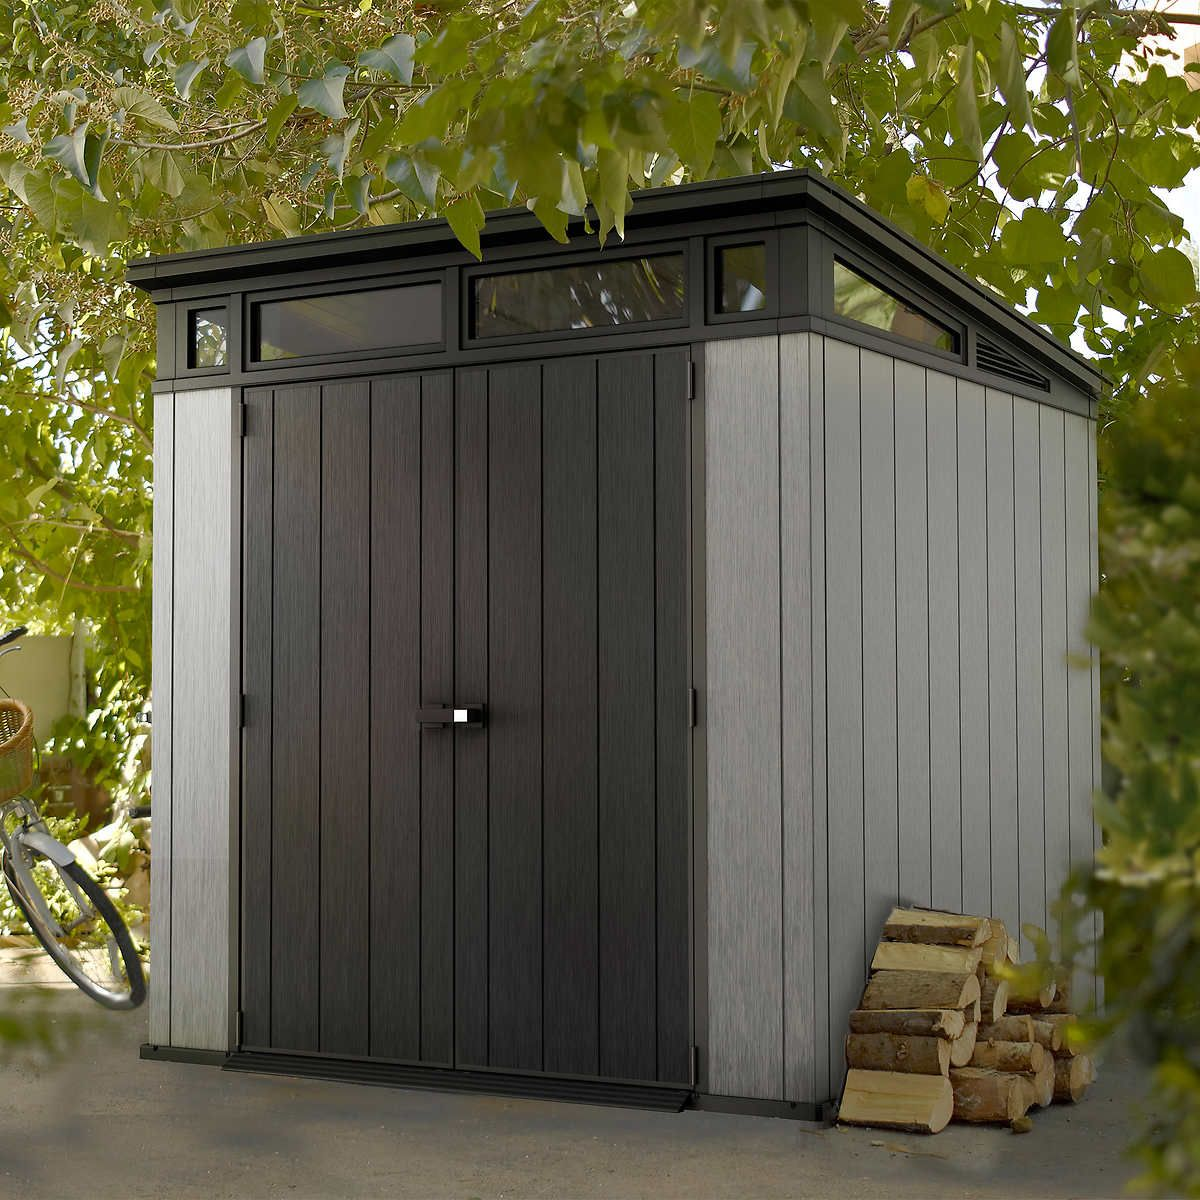 Pin By Karen On Exterior Resin Sheds Outdoor Sheds Outdoor Storage Sheds